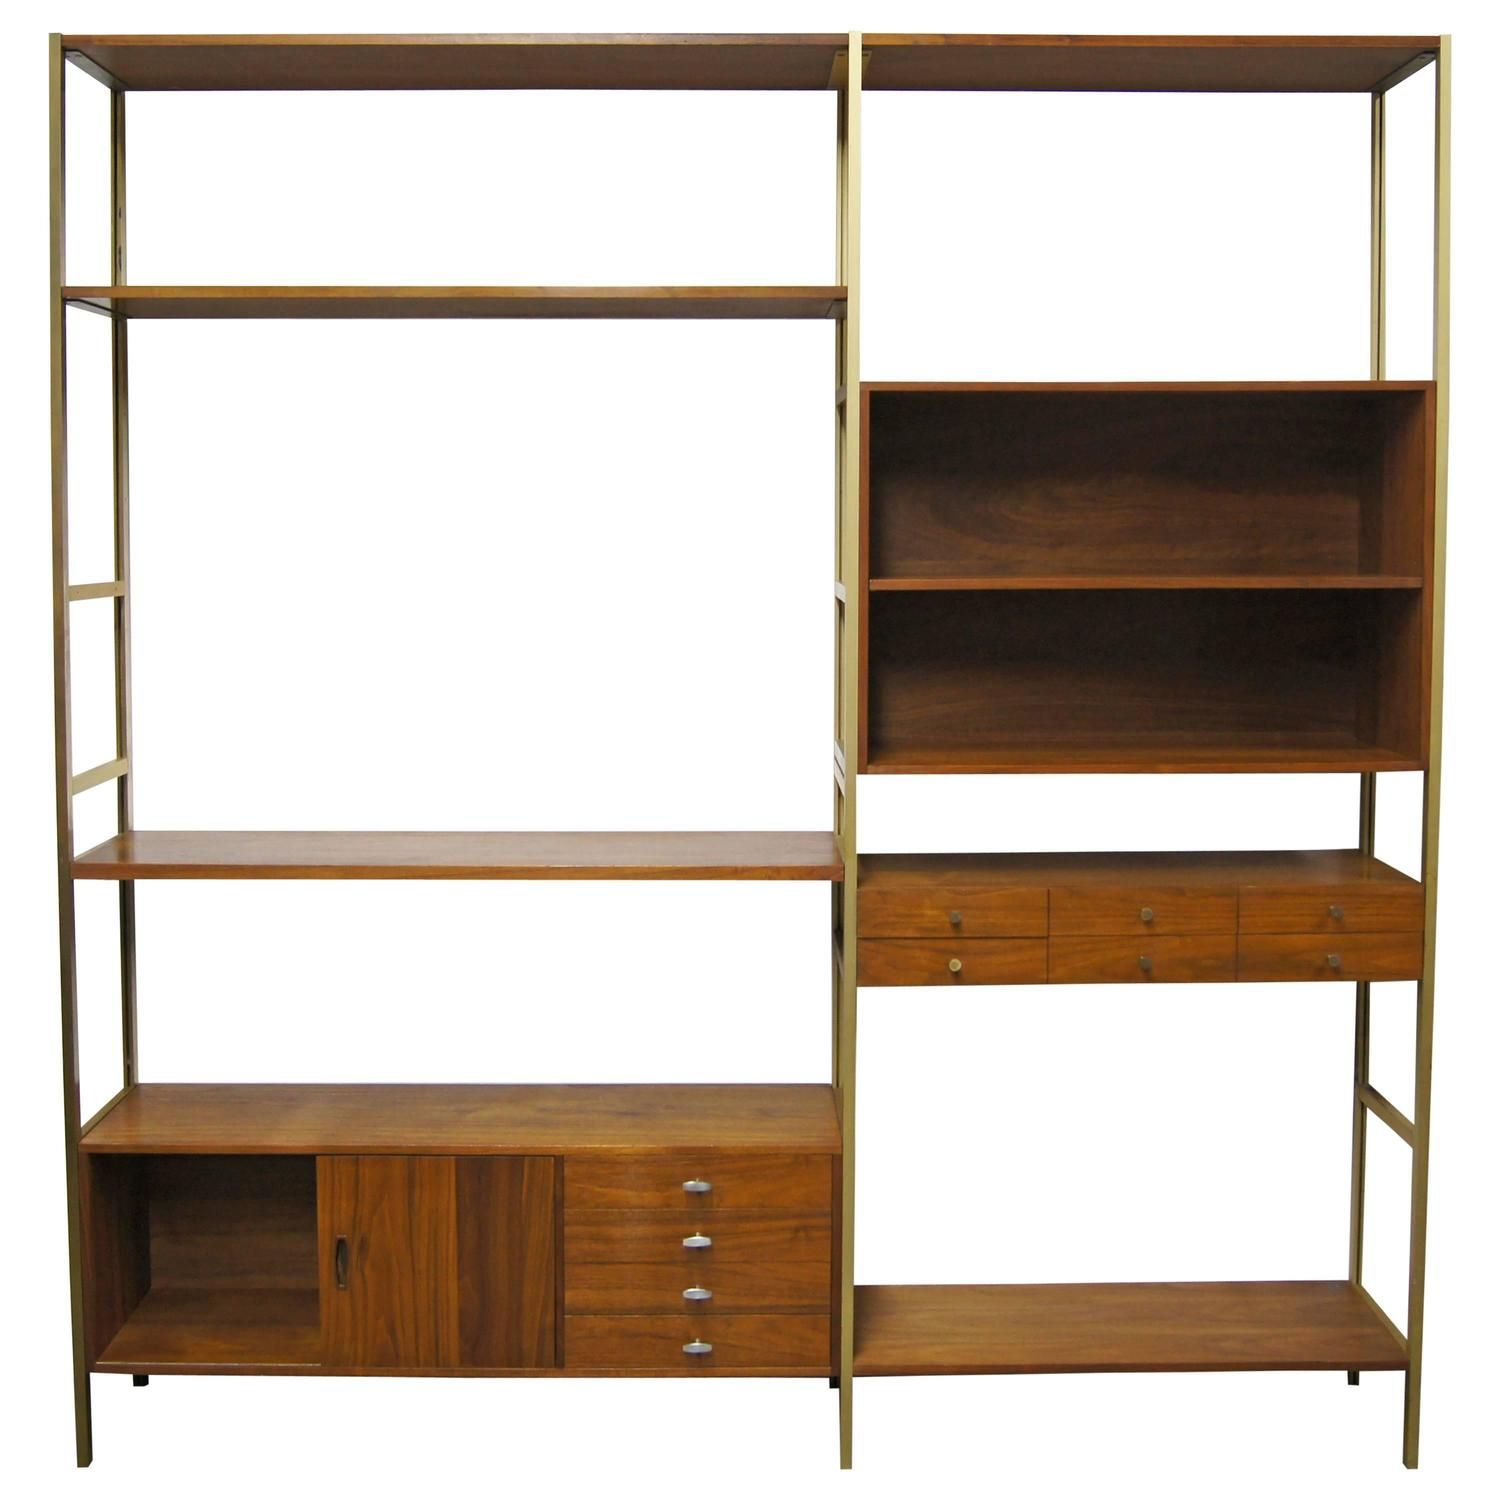 Modular Shelving Unit by Paul McCobb for H. Sacks & Sons | From a unique collection of antique and modern shelves at https://www.1stdibs.com/furniture/storage-case-pieces/shelves/